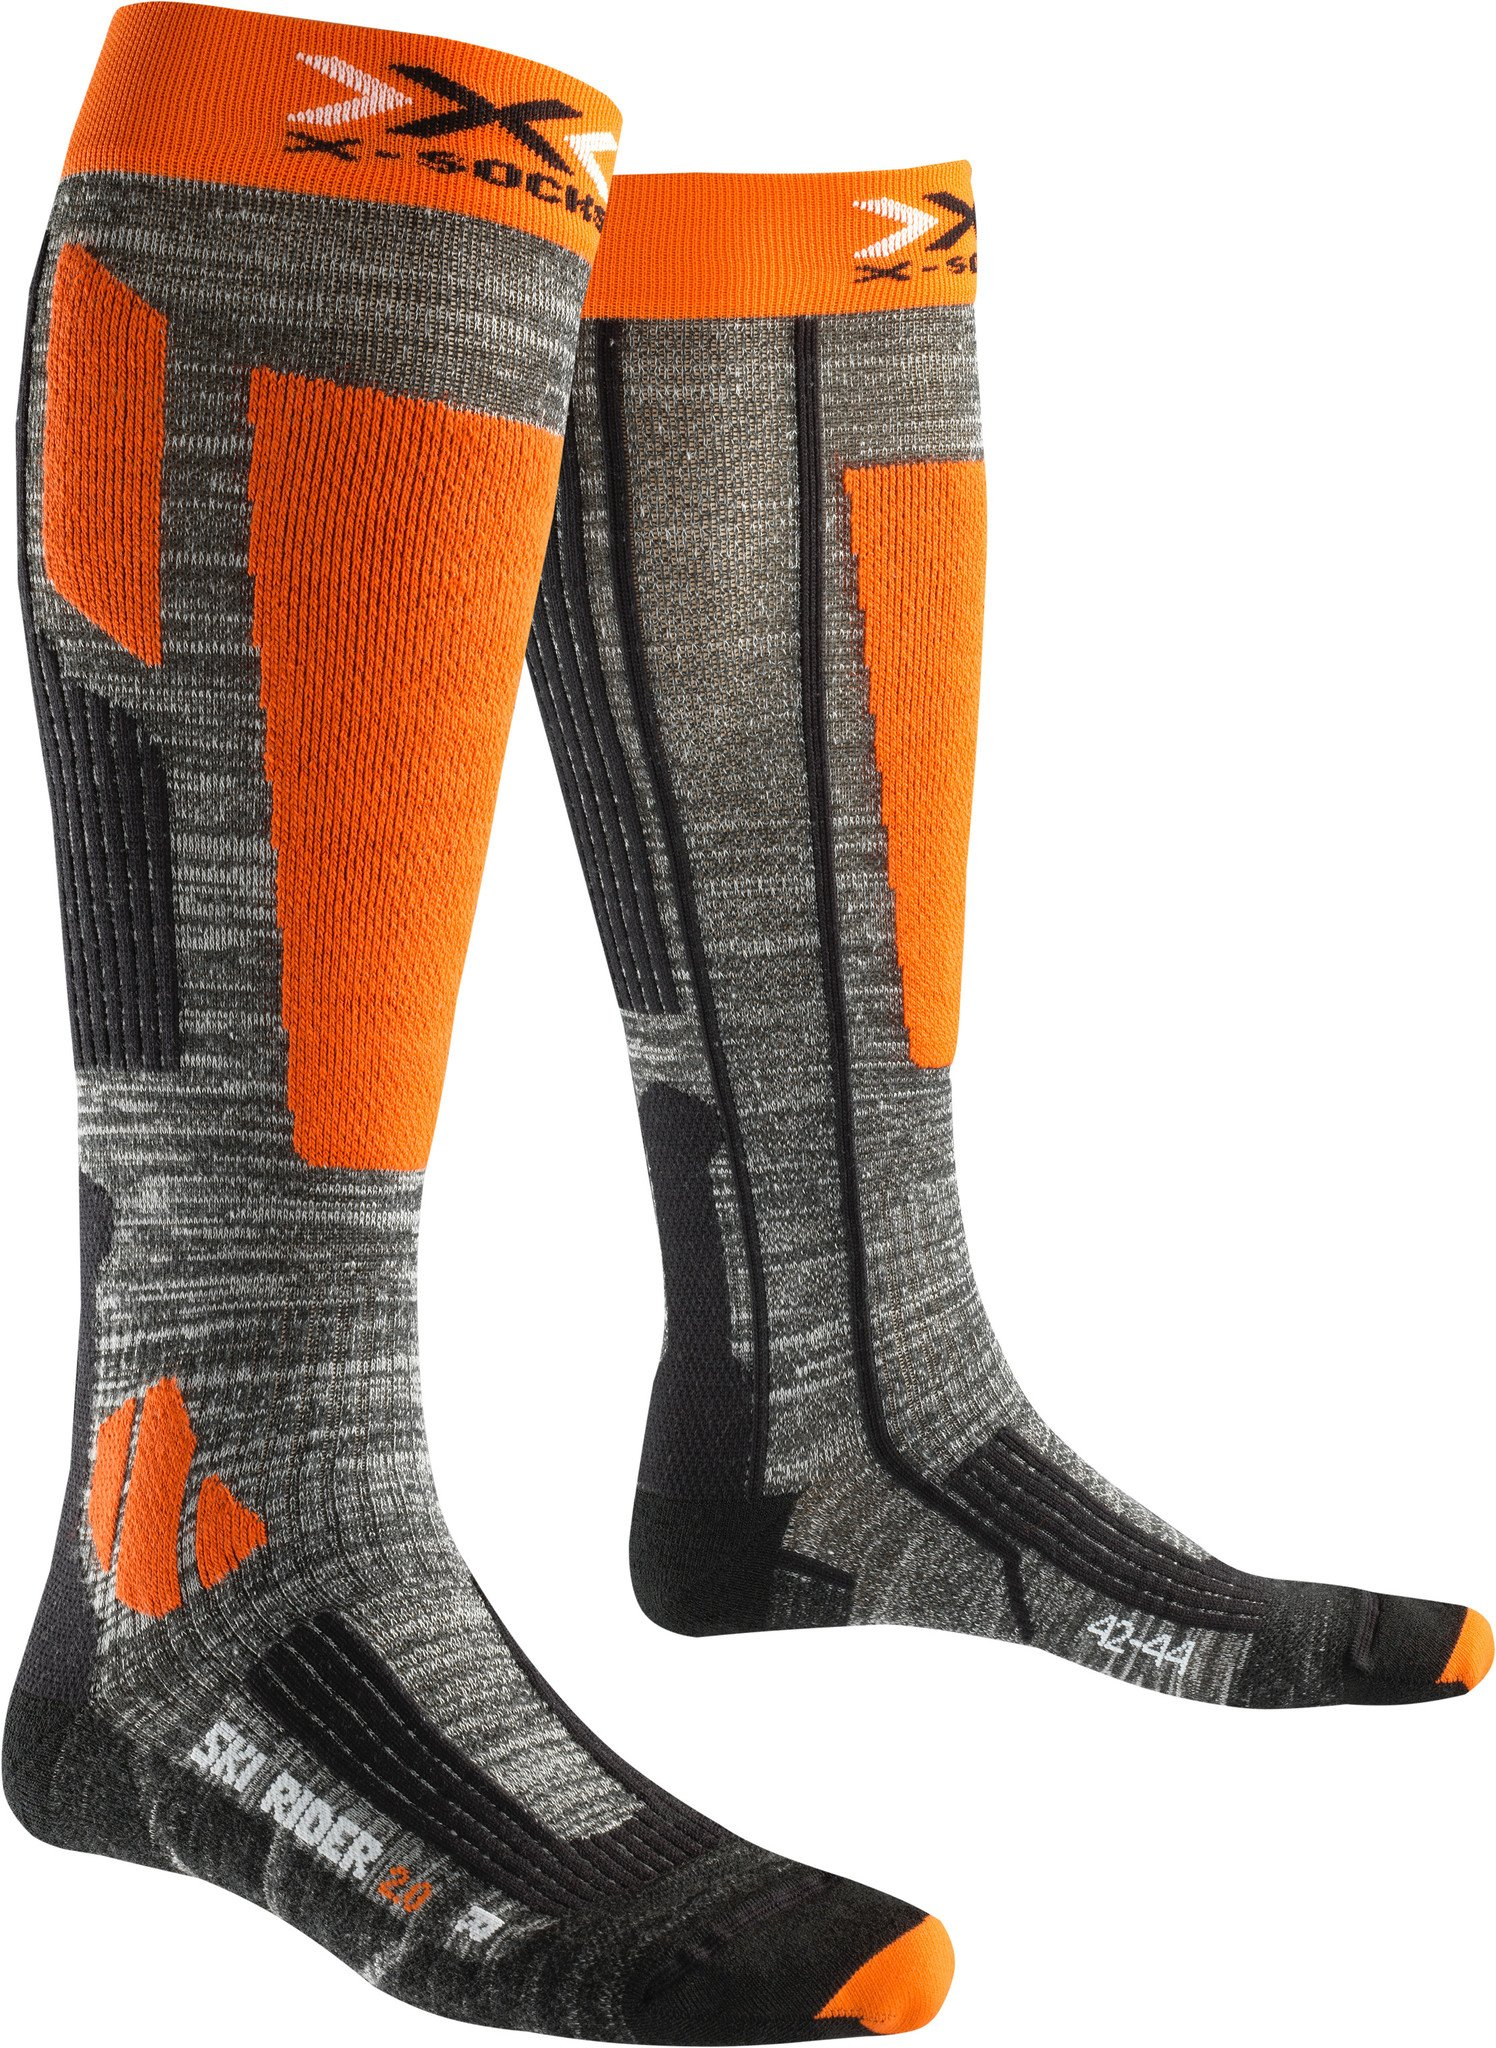 X-Socks Herren Socken SKI RIDER 2.0, Grey Melange/Orange, 45/47, X100092